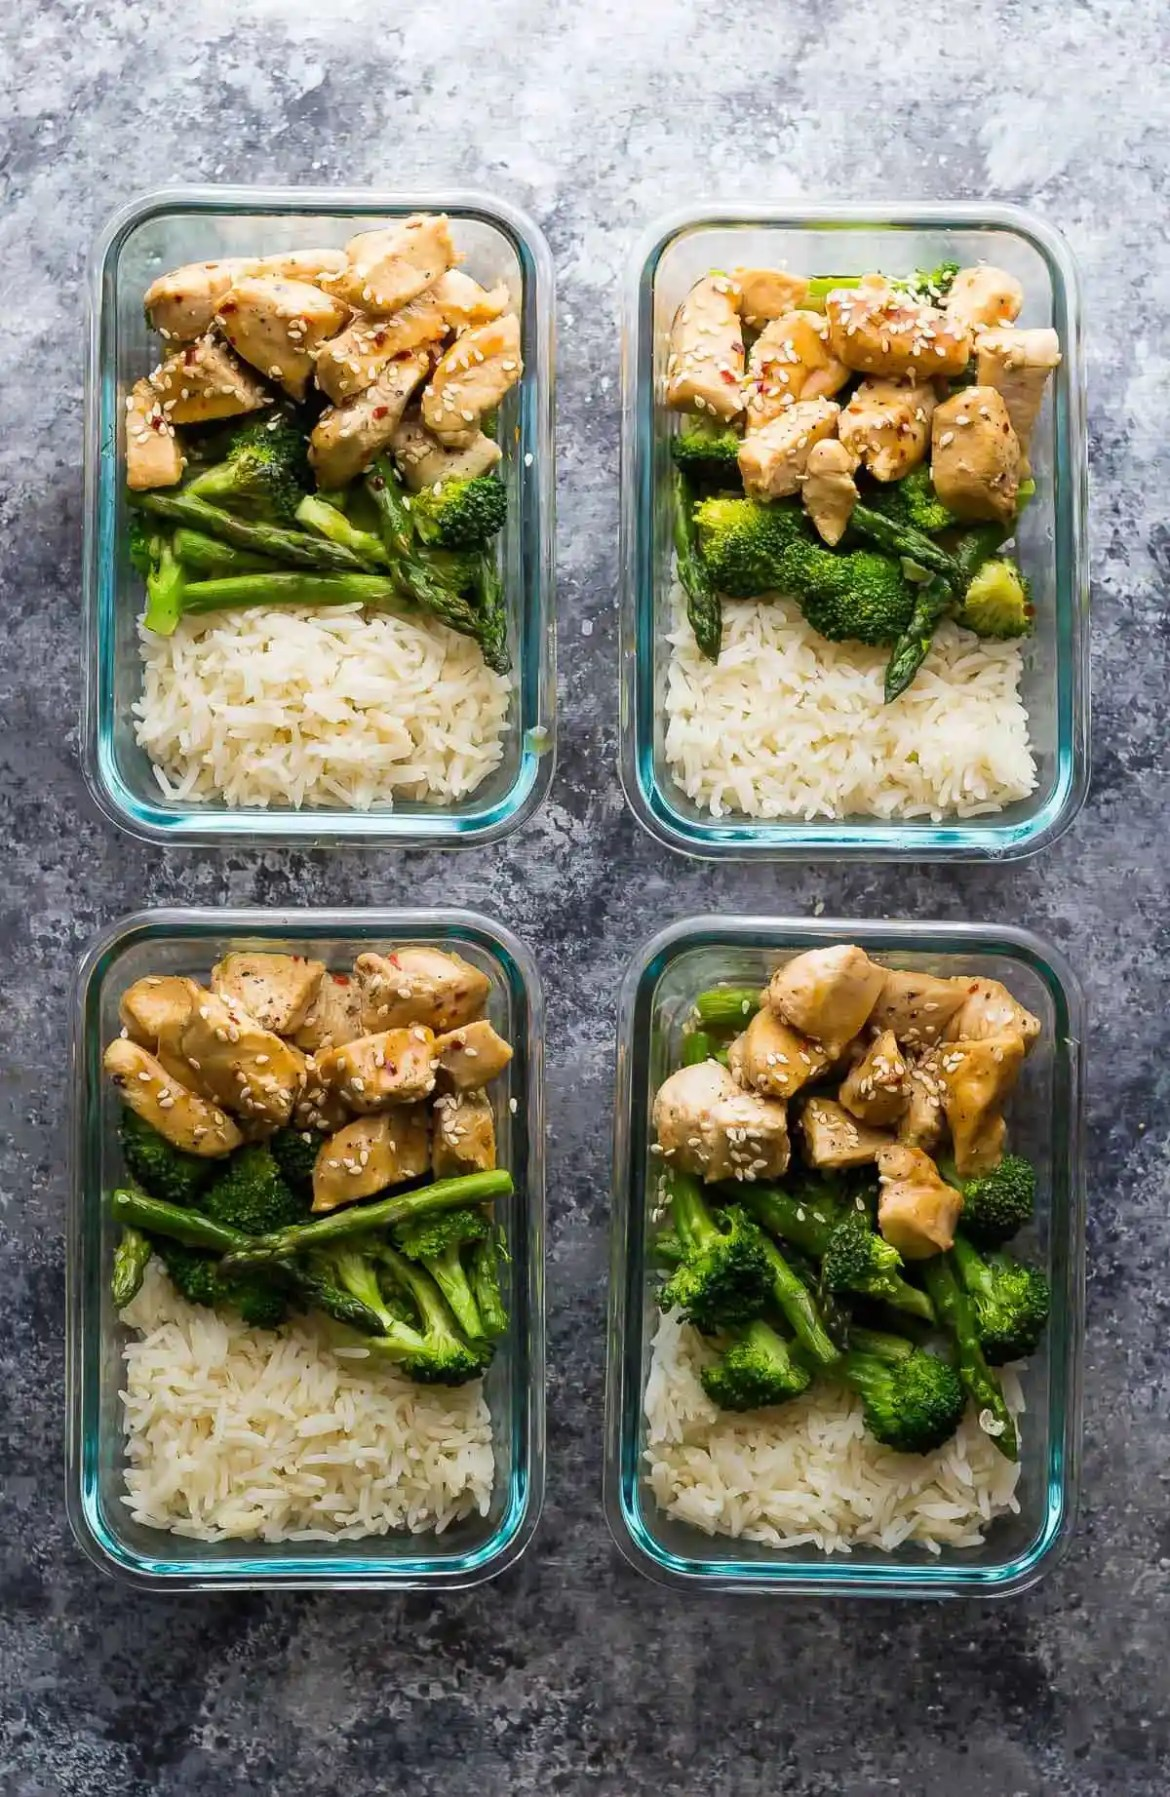 10 Meal Prep Ideas For The Busy College Student